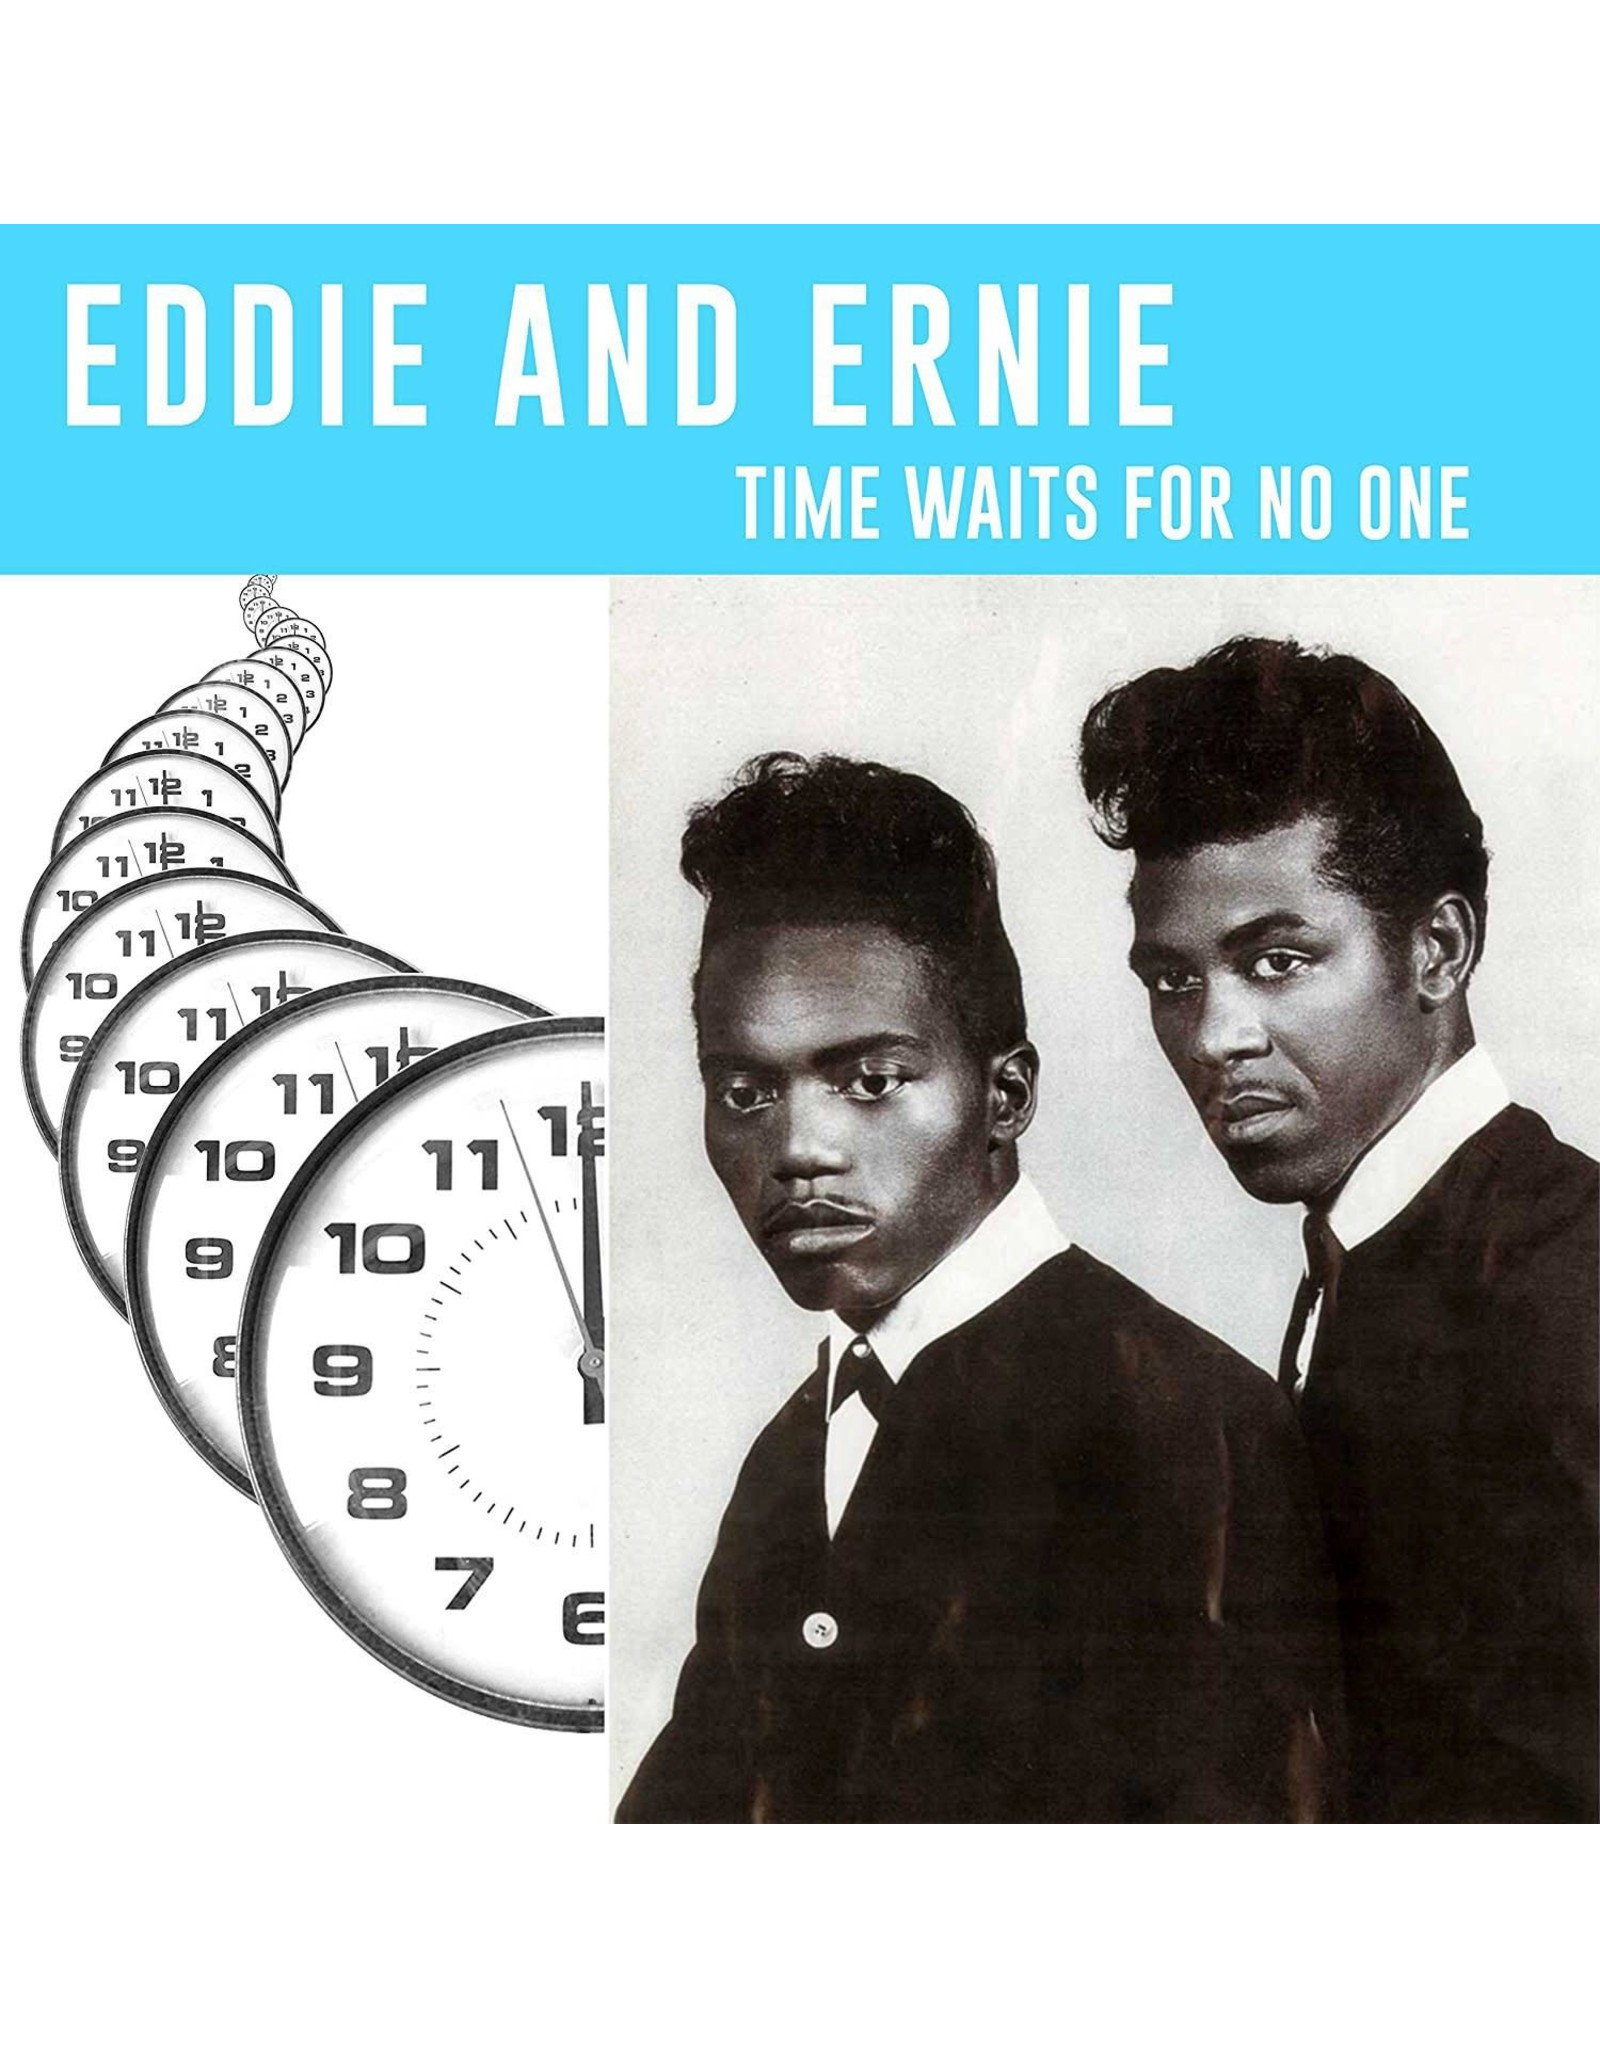 New Vinyl Eddie & Ernie - Time Waits For No One LP